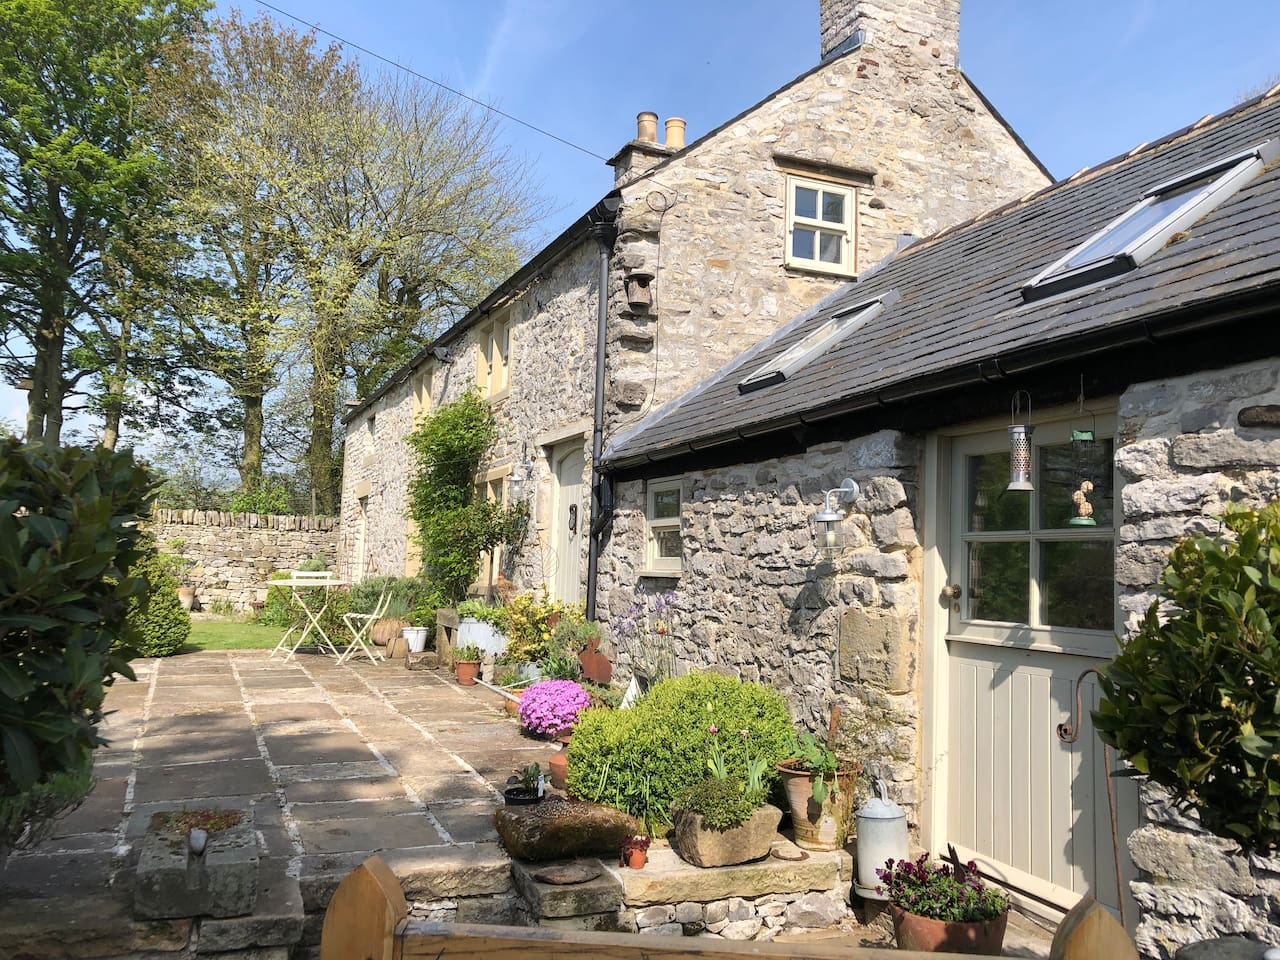 Sycamore Cottage is situated in the hamlet of Rowland near Bakewell . Nestled into the hillside below Longstone Edge, on a country lane with a handful of other  dwellings, we are surrounded by open countryside home to sheep, cows, highland cattle and a milk herd. Enjoy your stay in this luxury accommodation in the beautiful Peak District.This is a one bedroom bnb so you will be the only guests.